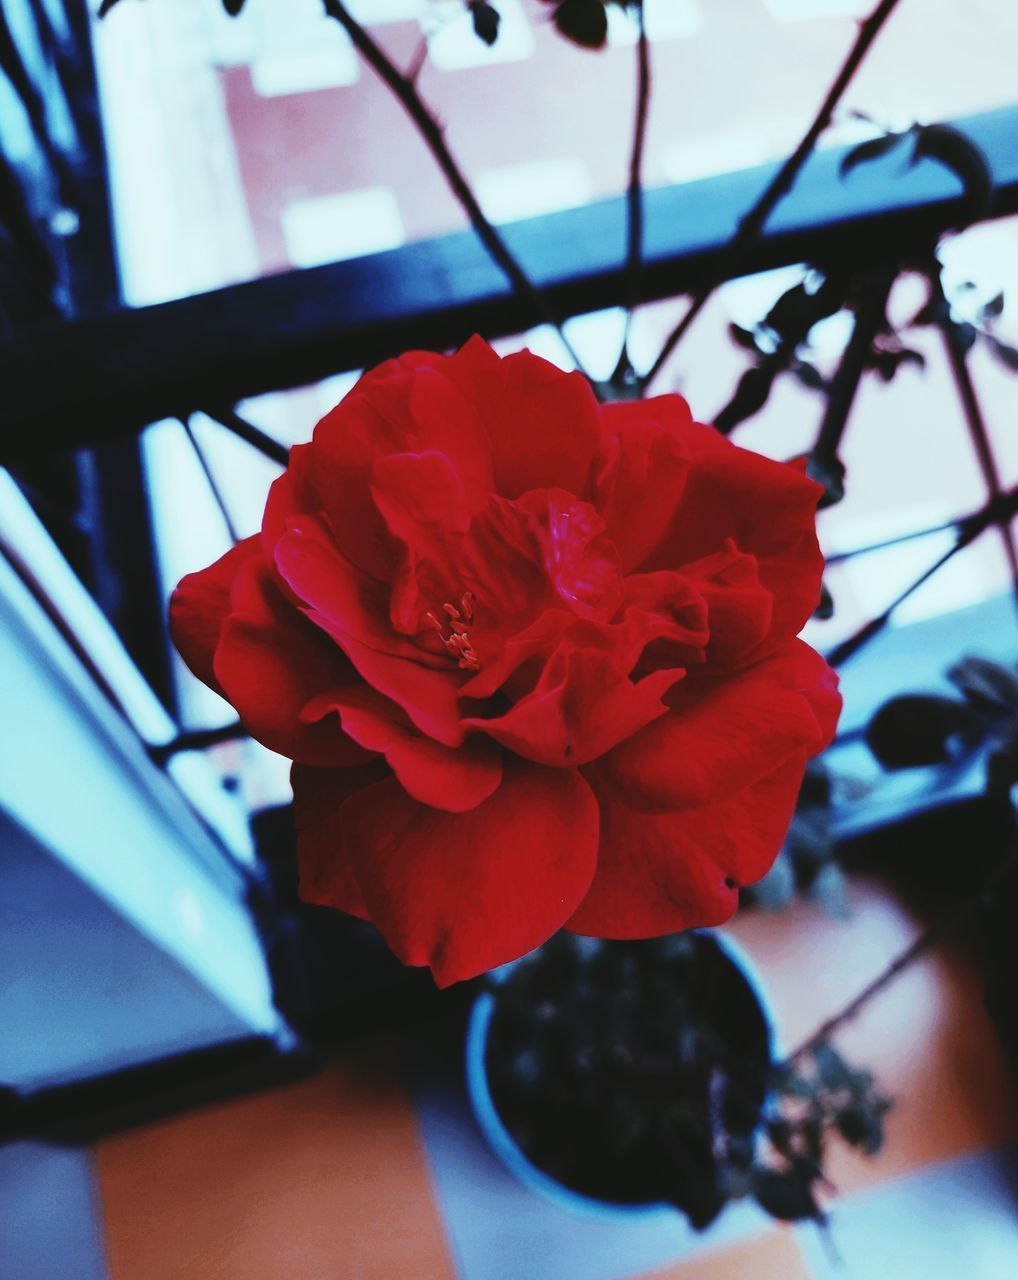 flowering plant, flower, freshness, plant, beauty in nature, petal, close-up, inflorescence, flower head, vulnerability, fragility, nature, red, indoors, growth, rose, rose - flower, focus on foreground, day, no people